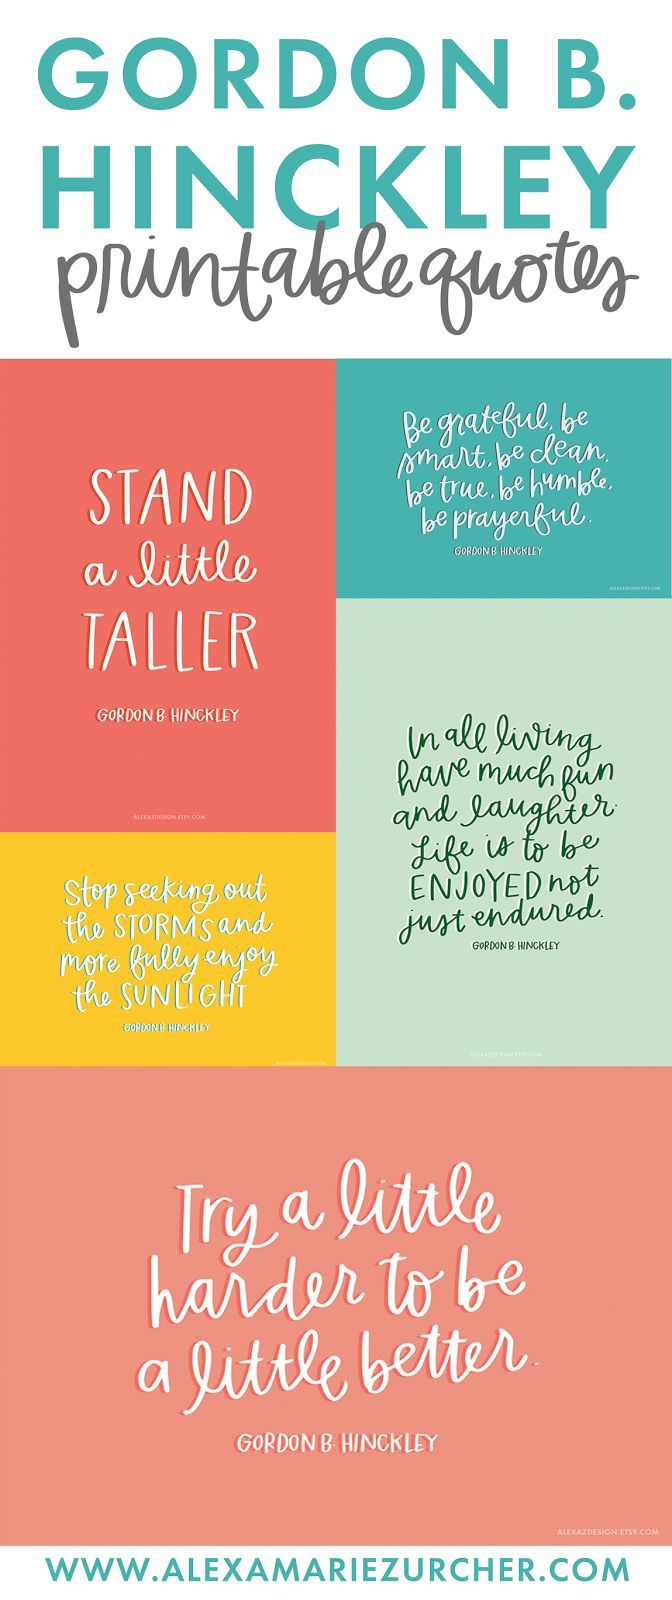 Printable Relief Society Handouts Gordon B Hinckley Quotes Zurcher Co He I Par Relief Society Handouts Gordon B Hinckley Quotes Lds Quotes Uplifting